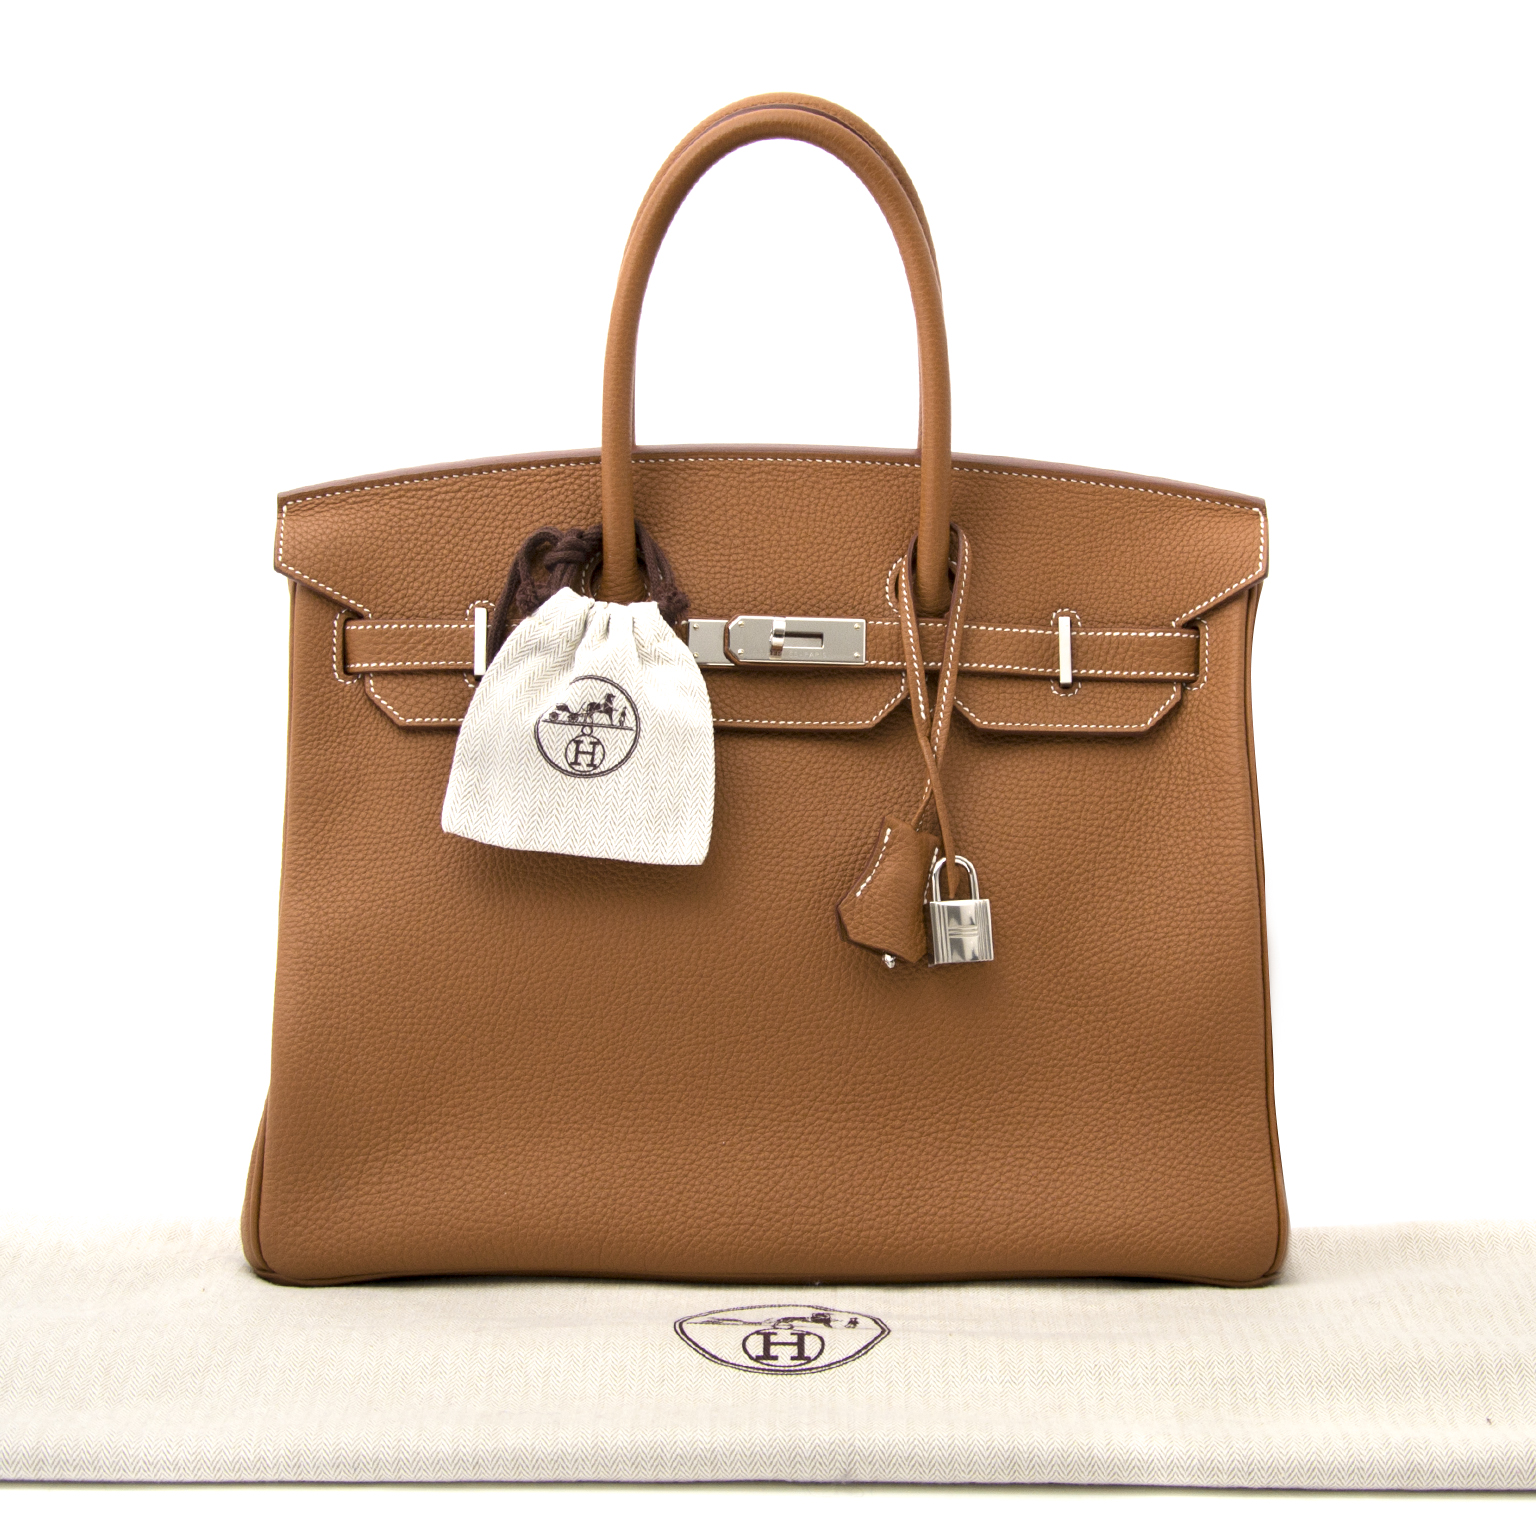 ... shop your secondhand as new invoice included As New Hermes Birkin 35  Veau Togo Gold PHW e7d2f6bbab